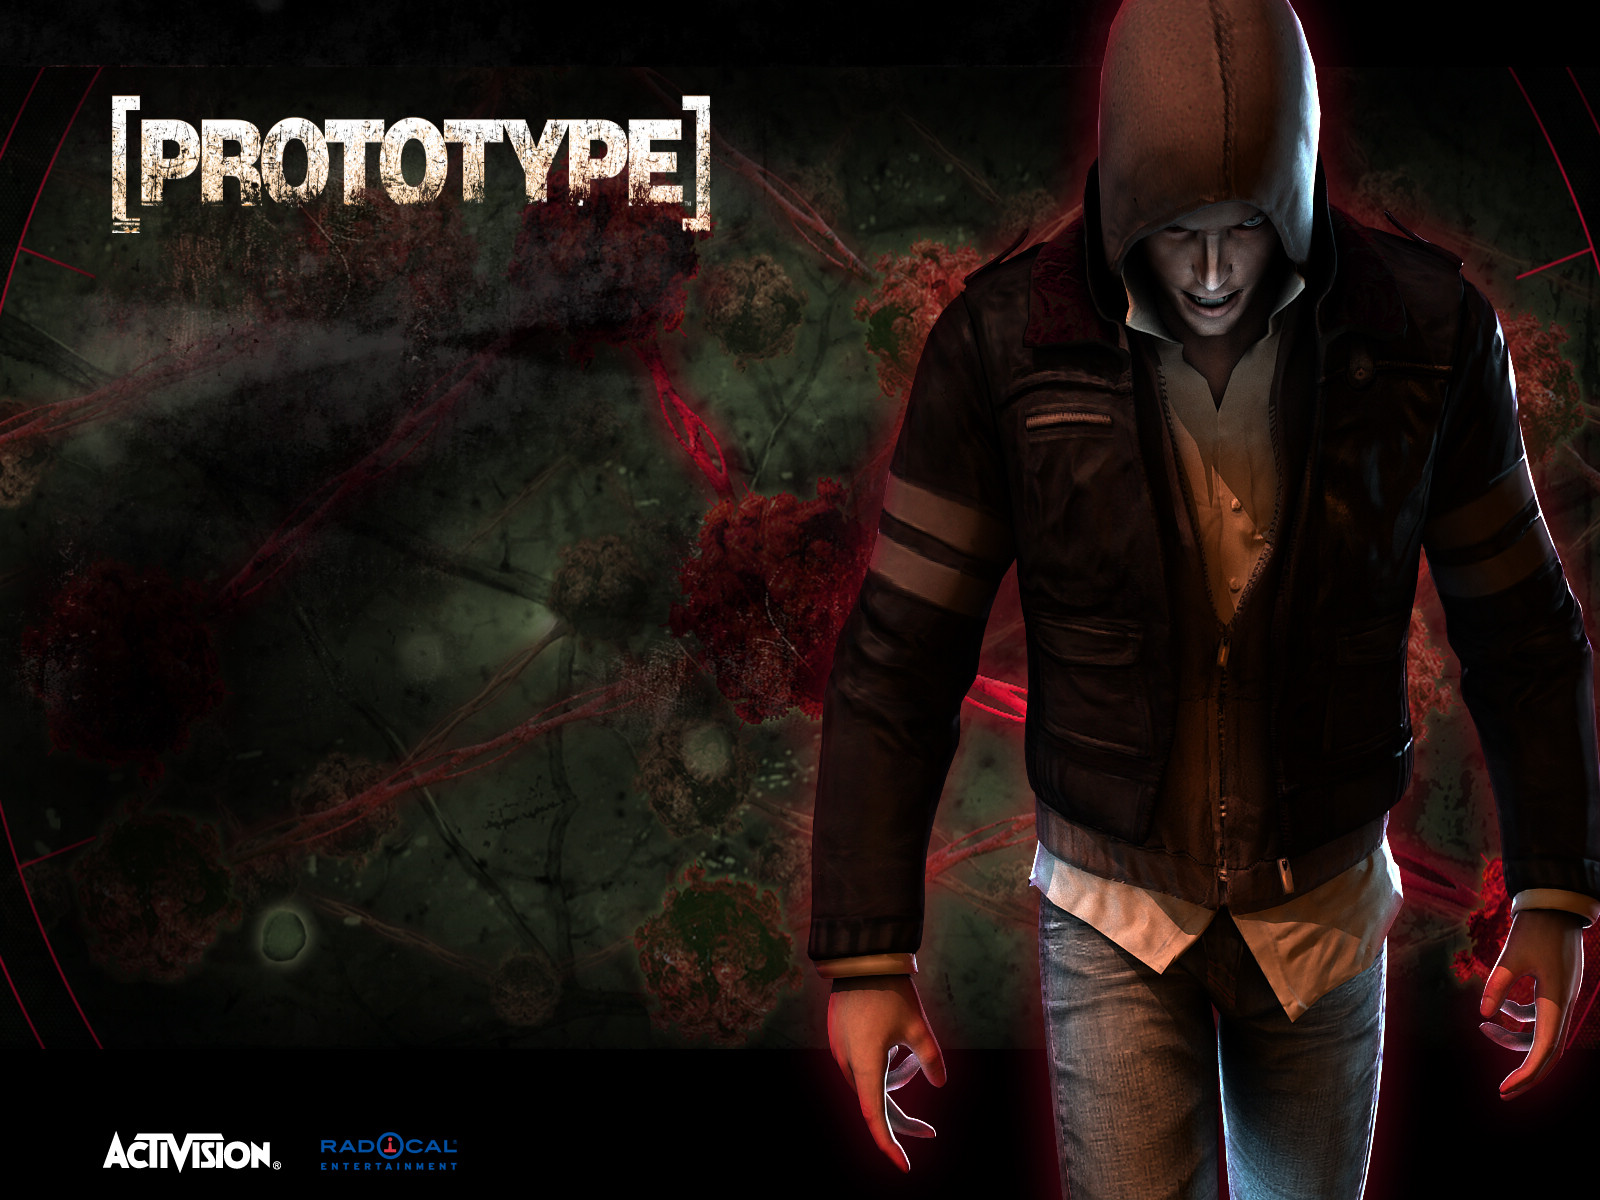 Sex mod for prototype 2 softcore comic